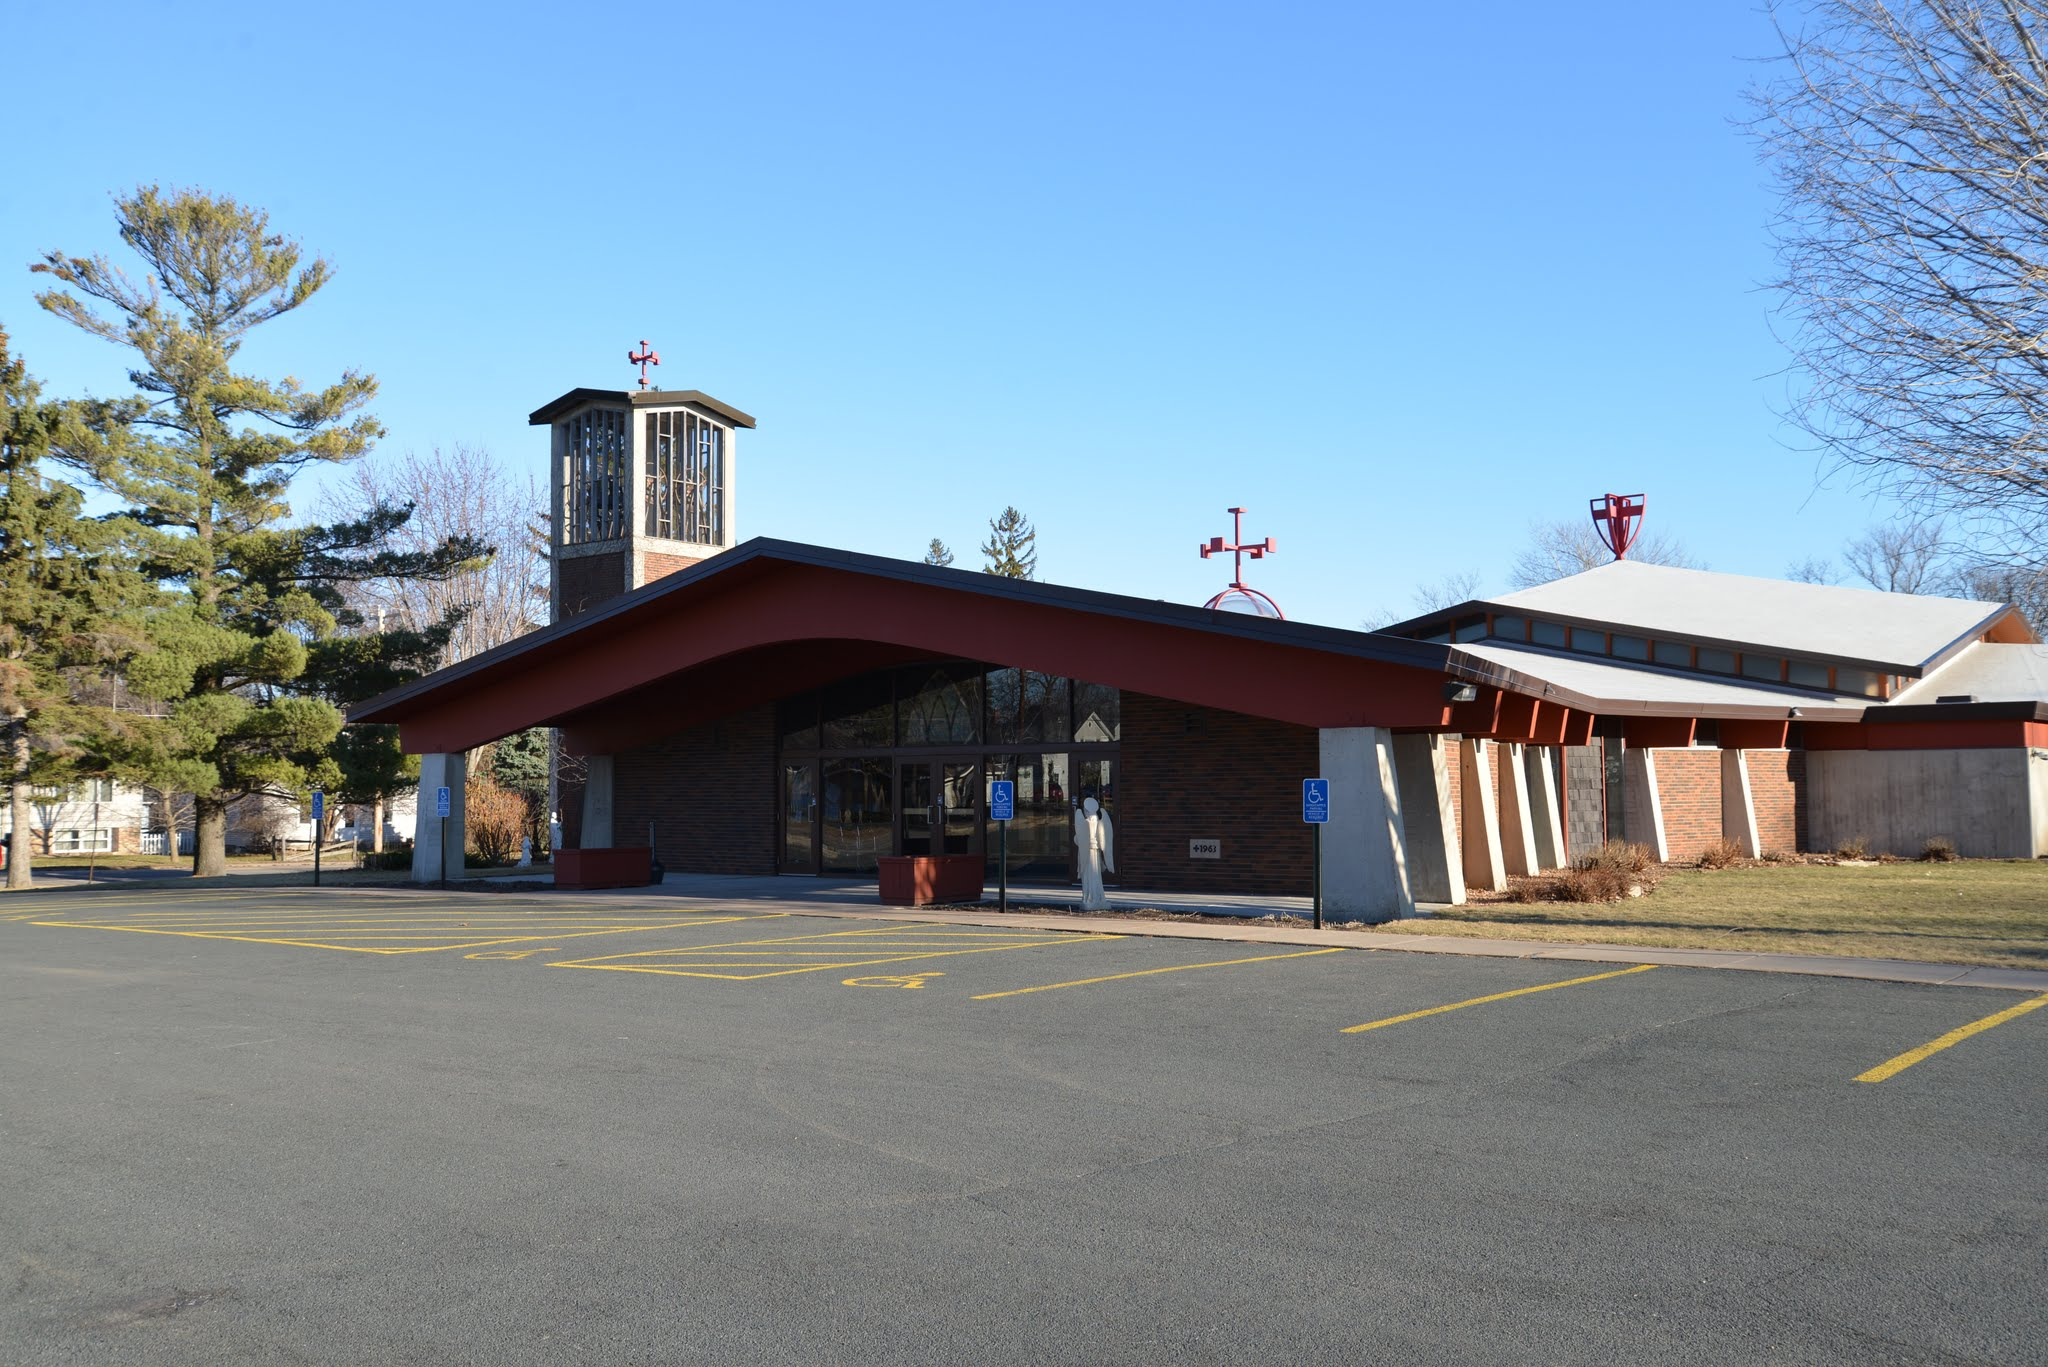 Current Church of St. George, Spring 2015, Meghan Flannery